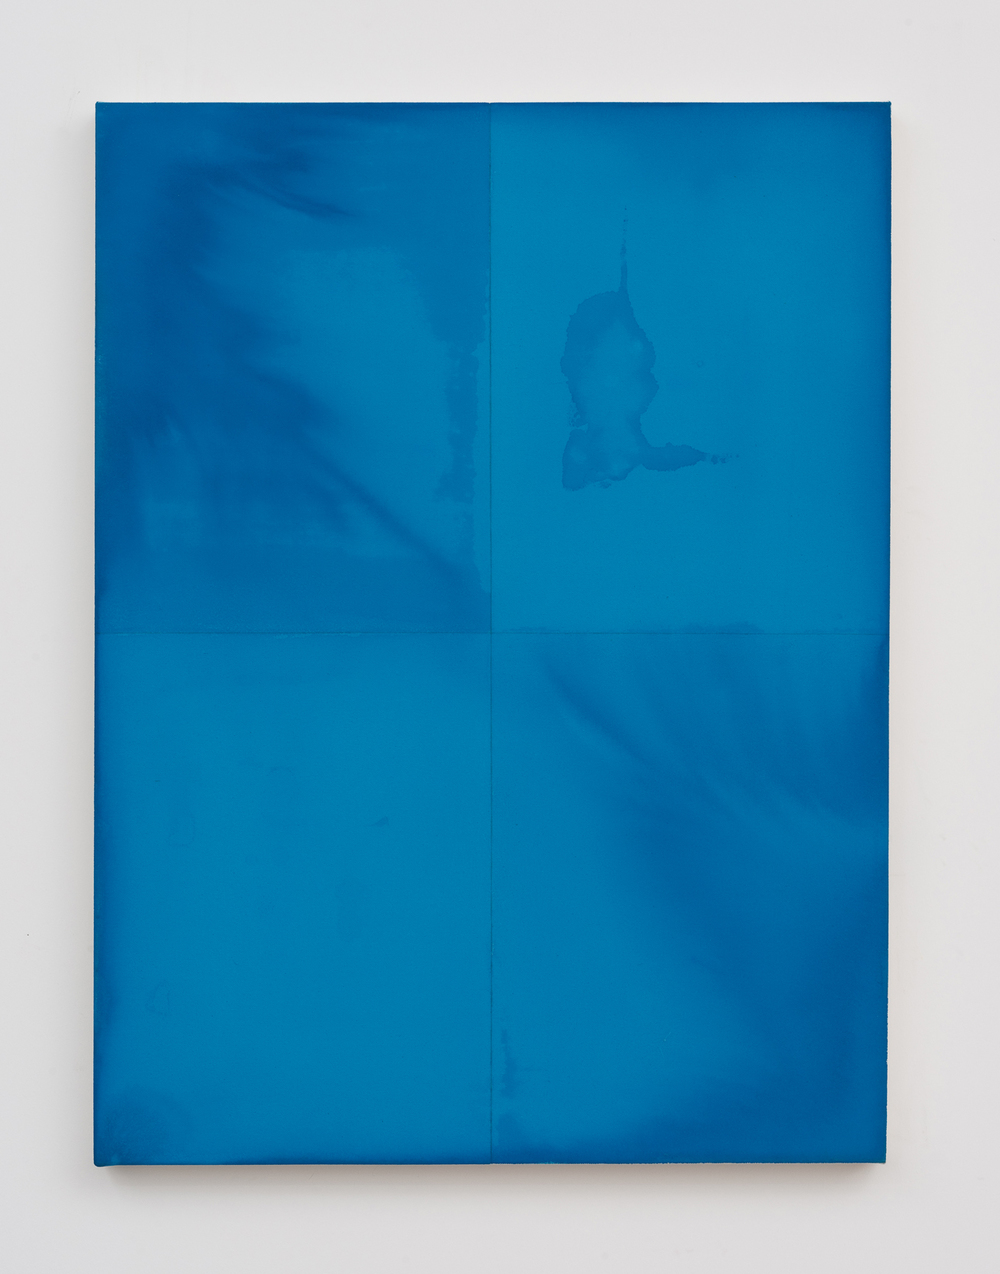 Blue Example Monochrome / Individually Treated Quadrants 2013 Acrylic and pencil on canvas: 91.4 x 68.5 cm / 36 x 27 in